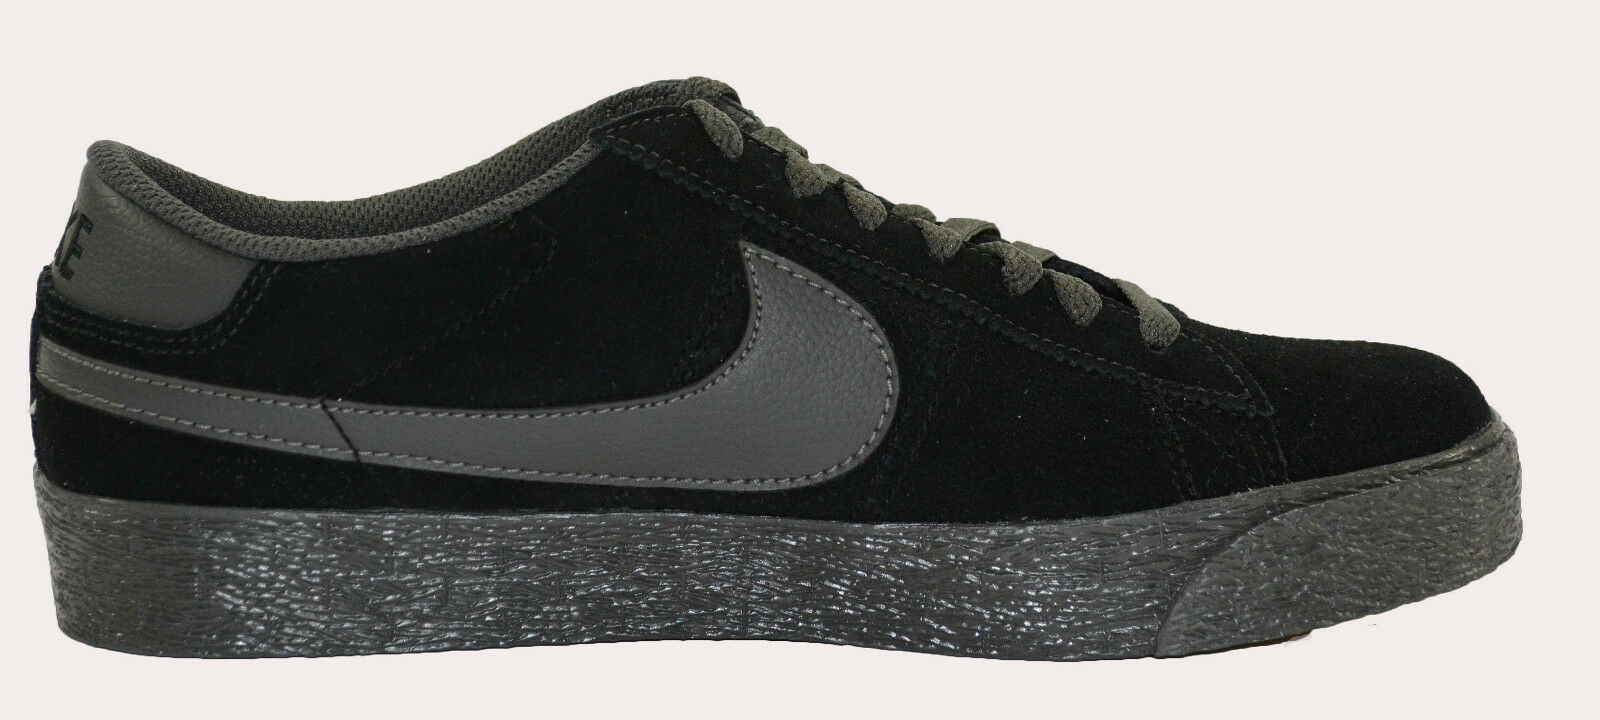 Nike BLAZER LOW SB Black Midnight Fog Discounted Skateboarding (141) Men's Shoes